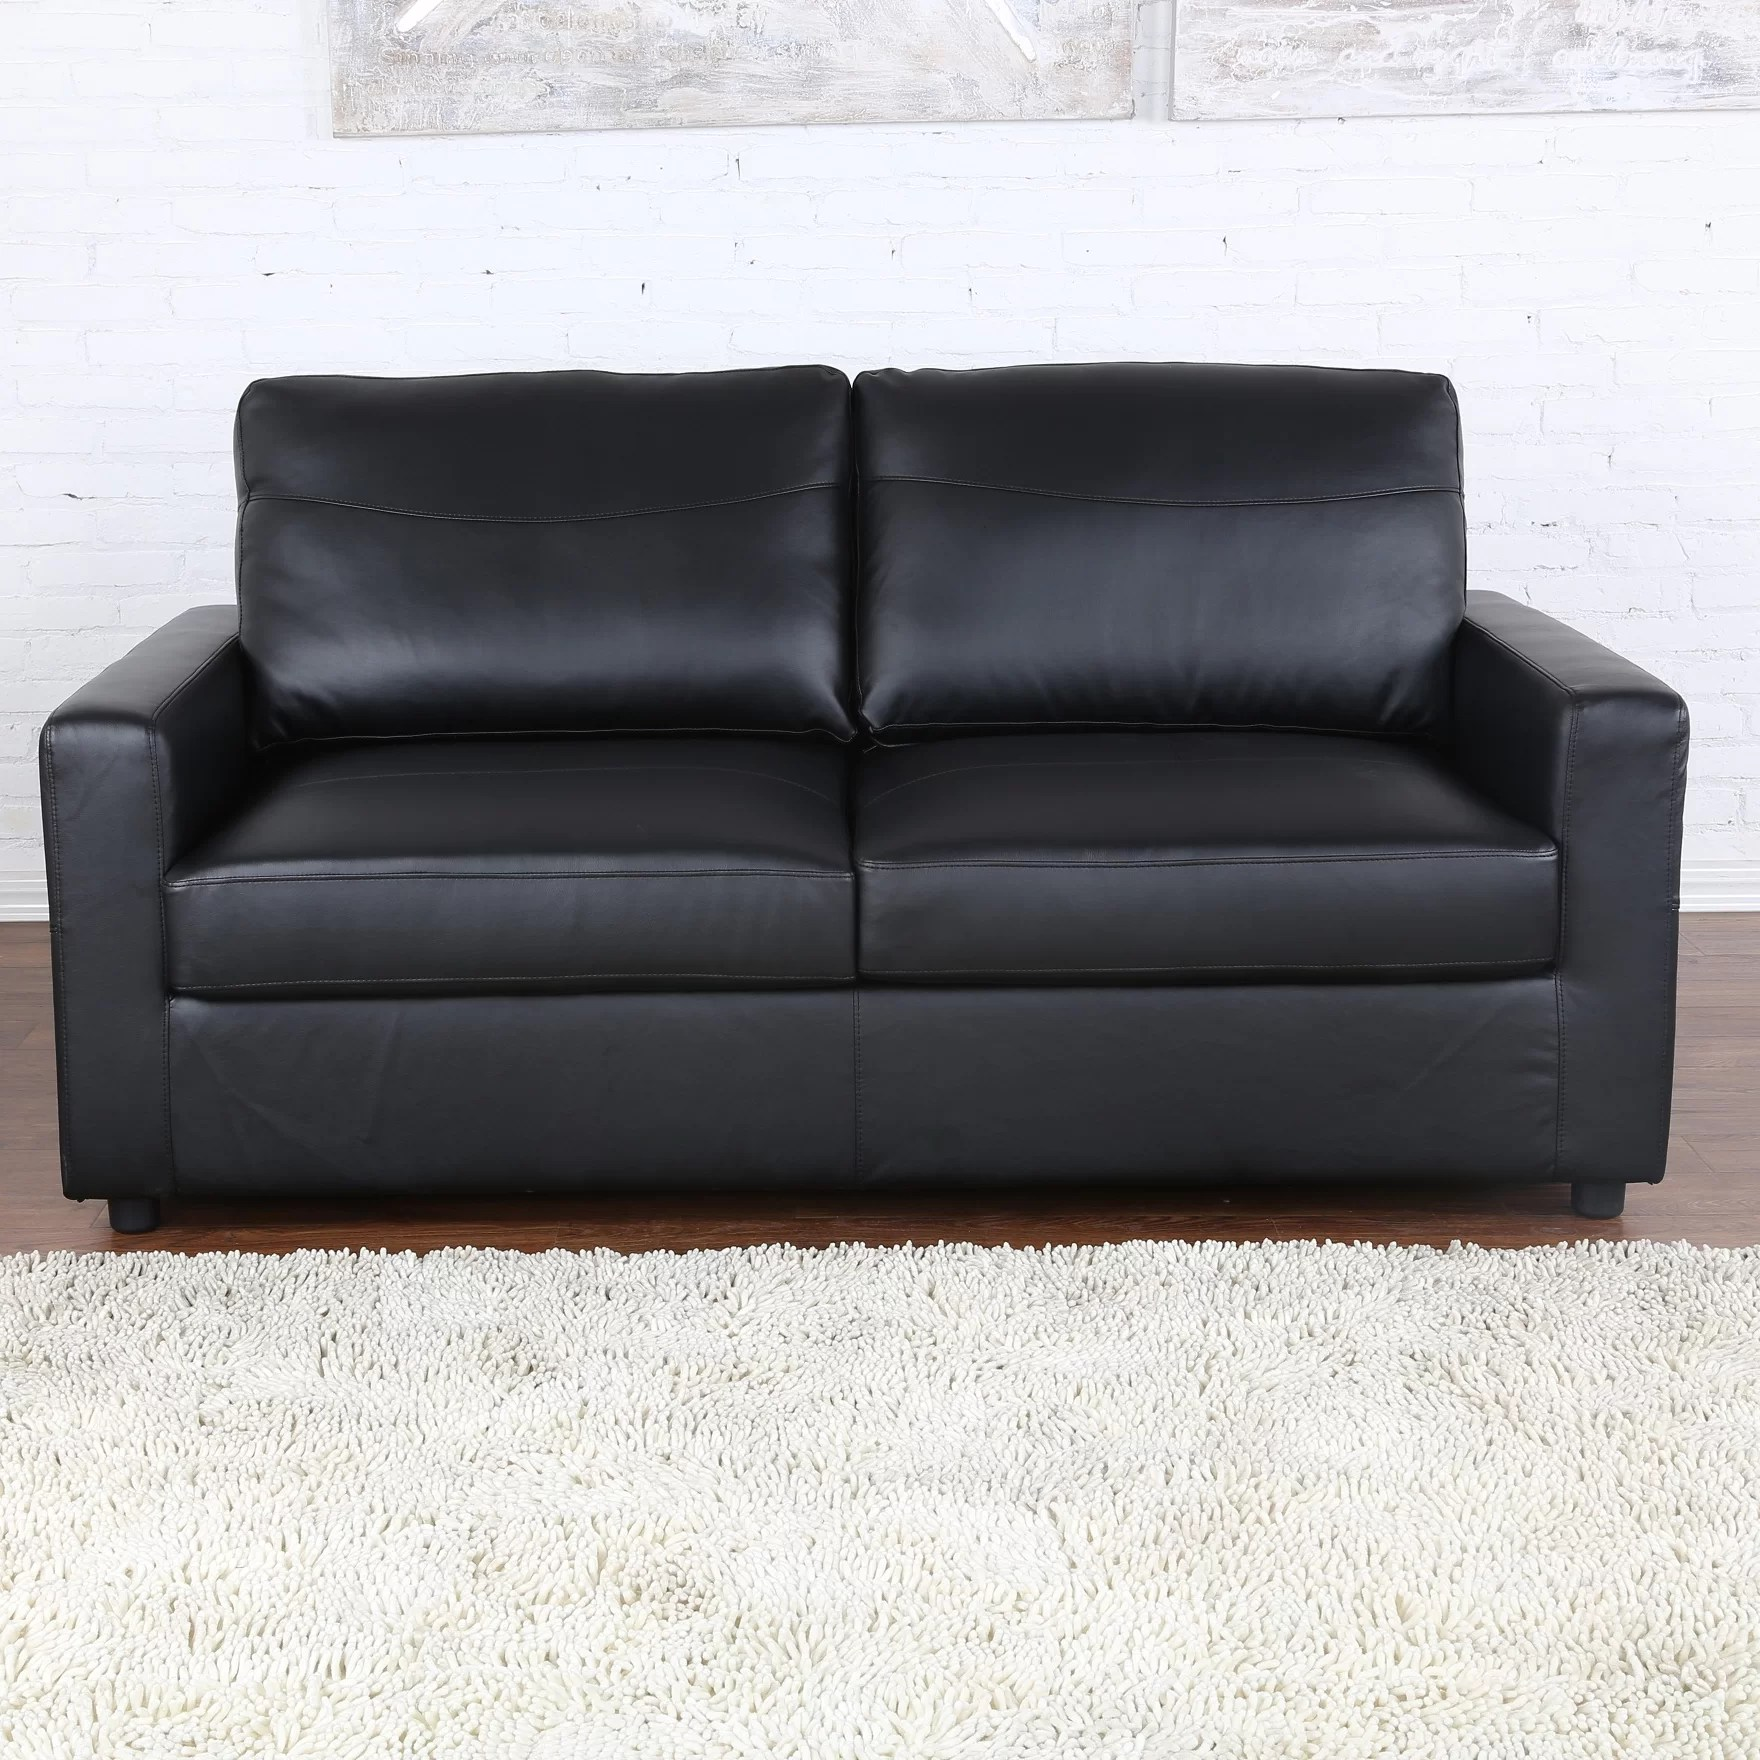 usa made sleeper sofa mainstays with memory foam madison home pull out and reviews